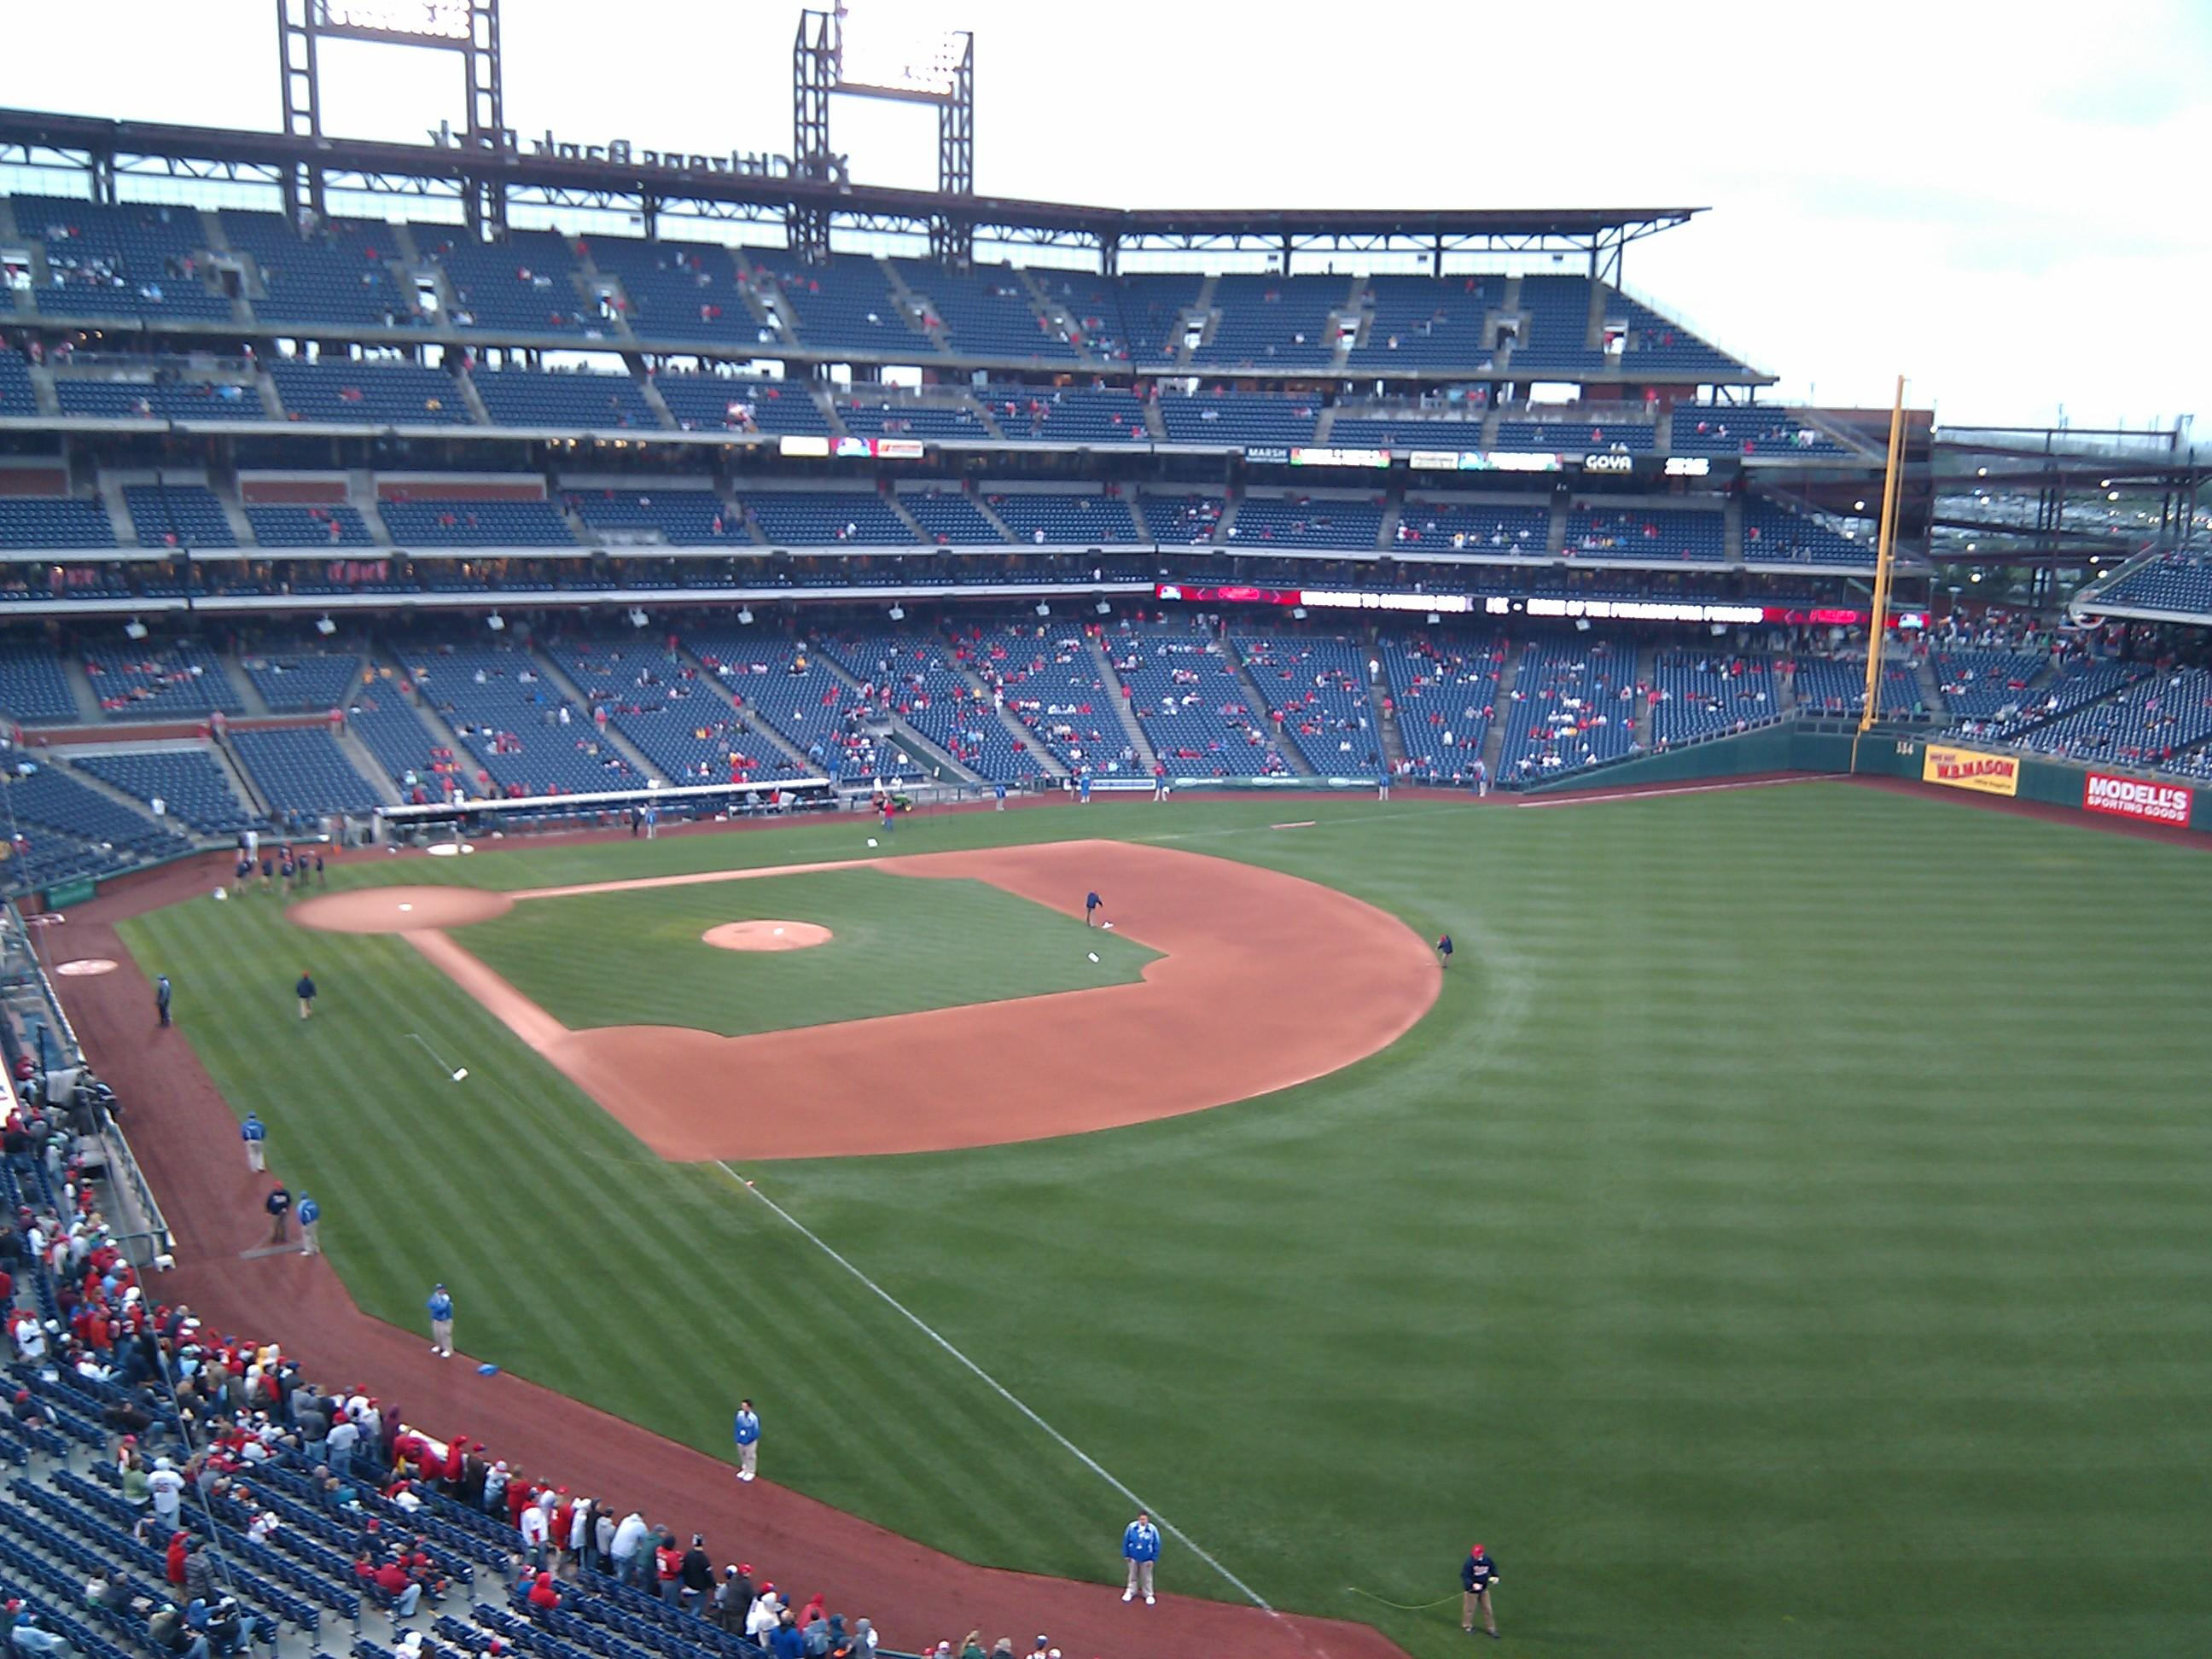 Citizens Bank Park Section 308 Row 1 Seat 12